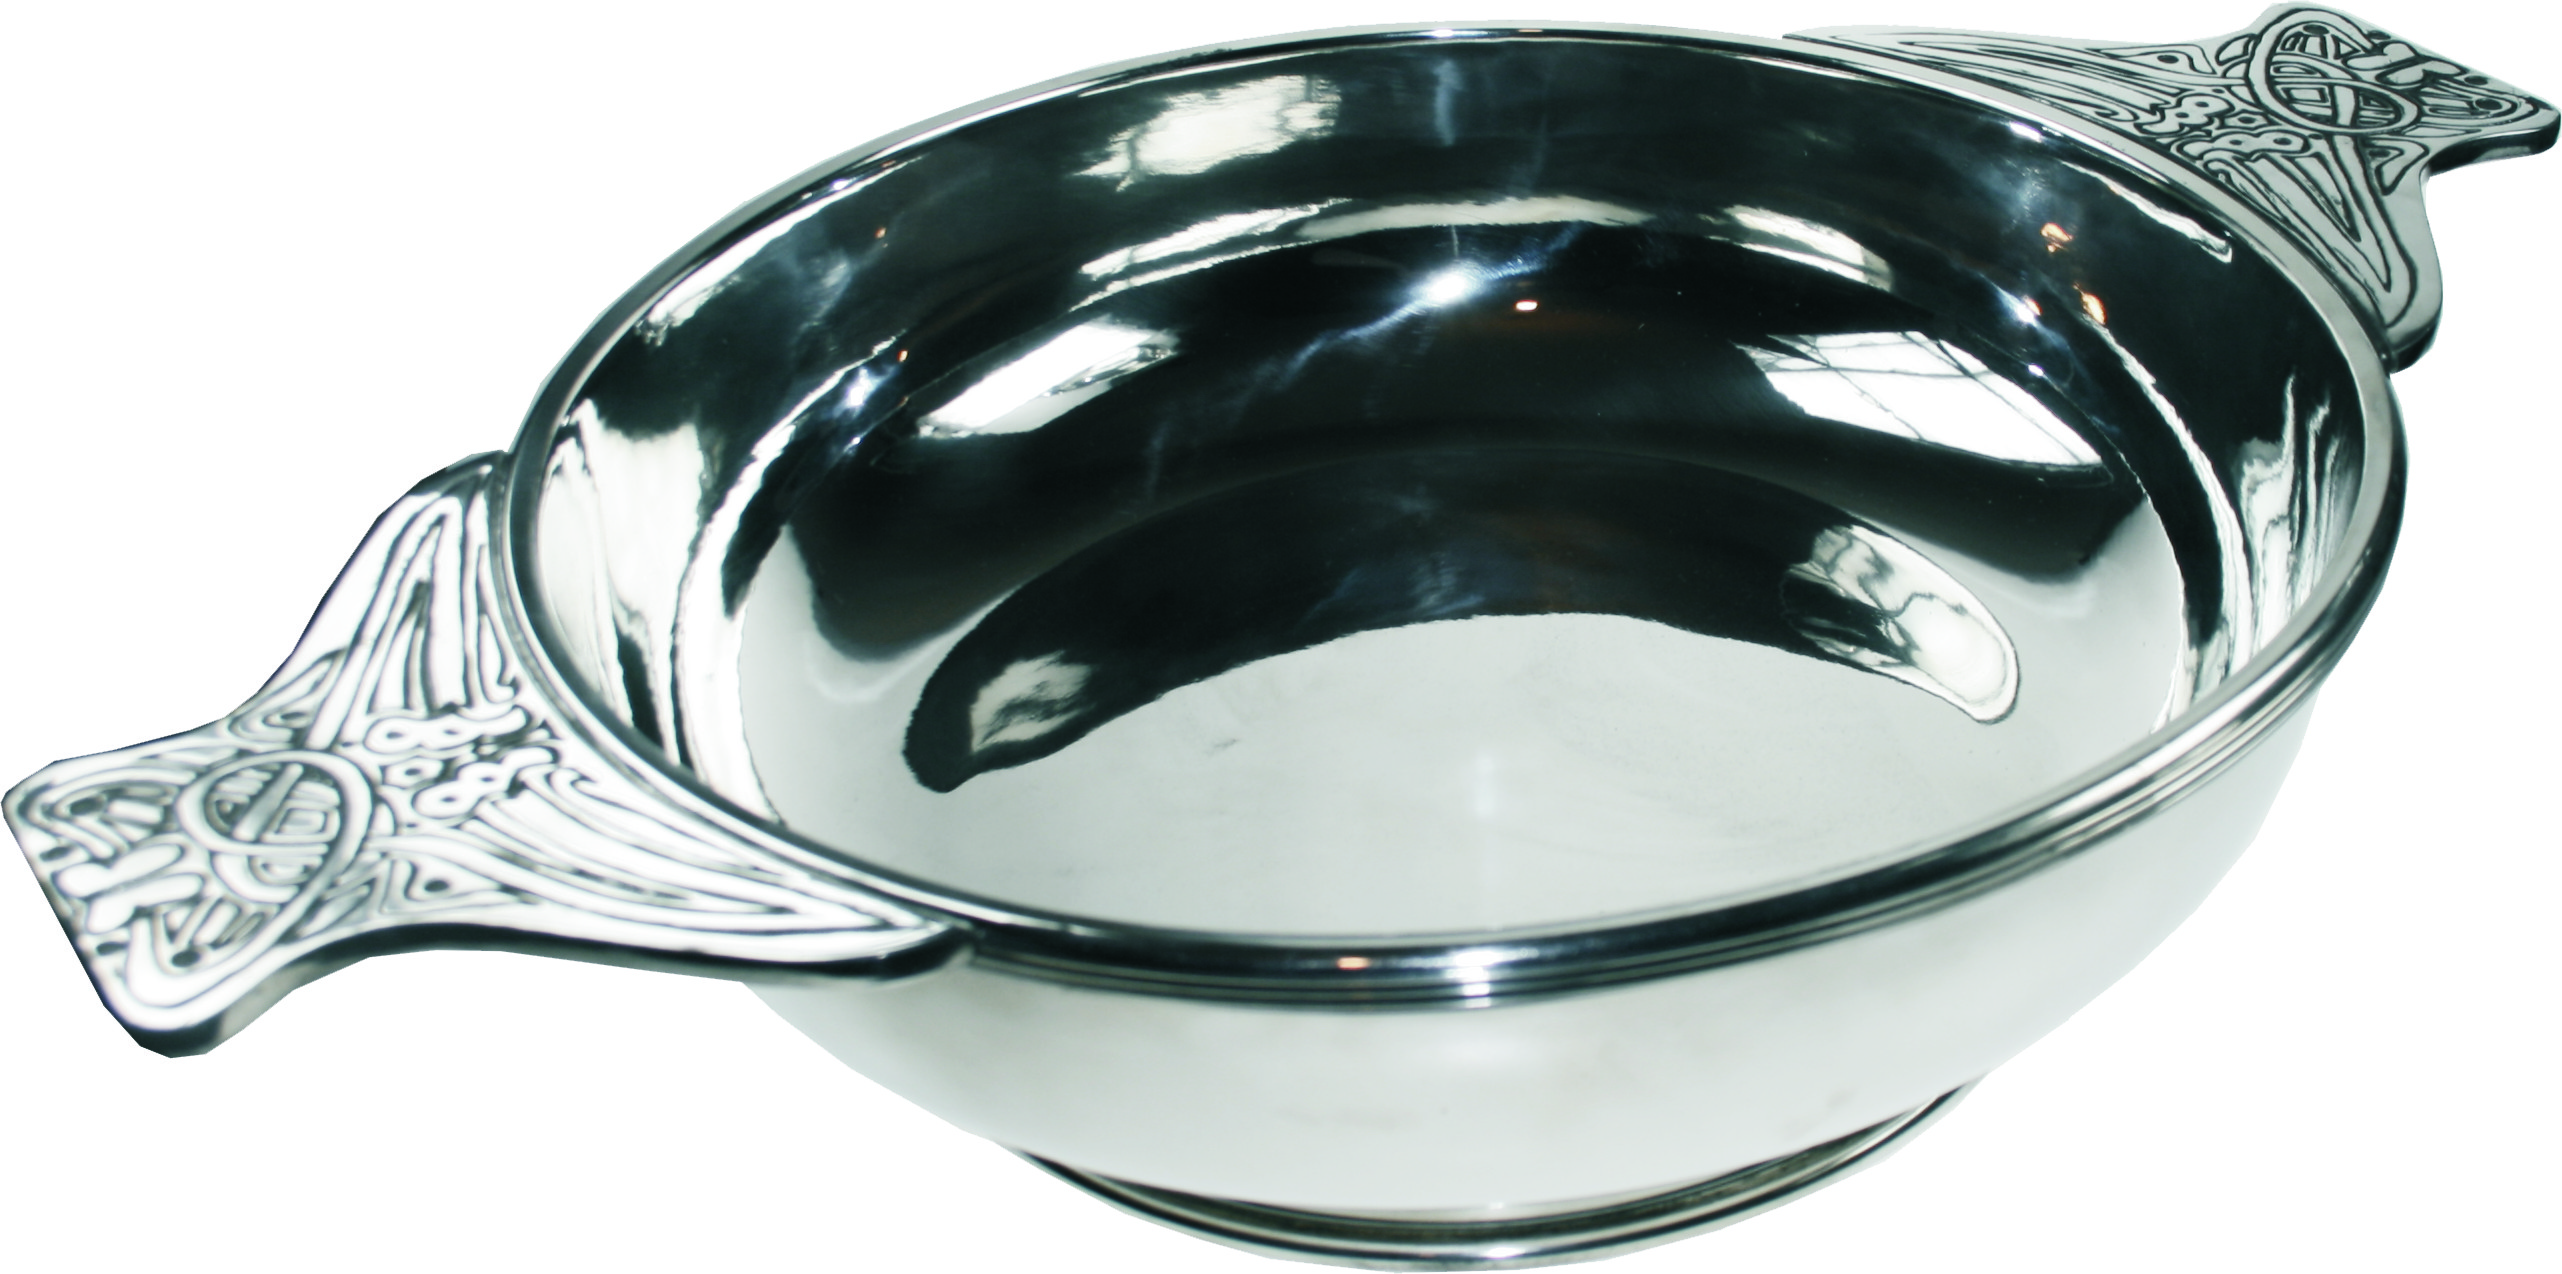 "Pewter Quaich Bowl with Celtic Patterned Handle 35cm (13.75"")"